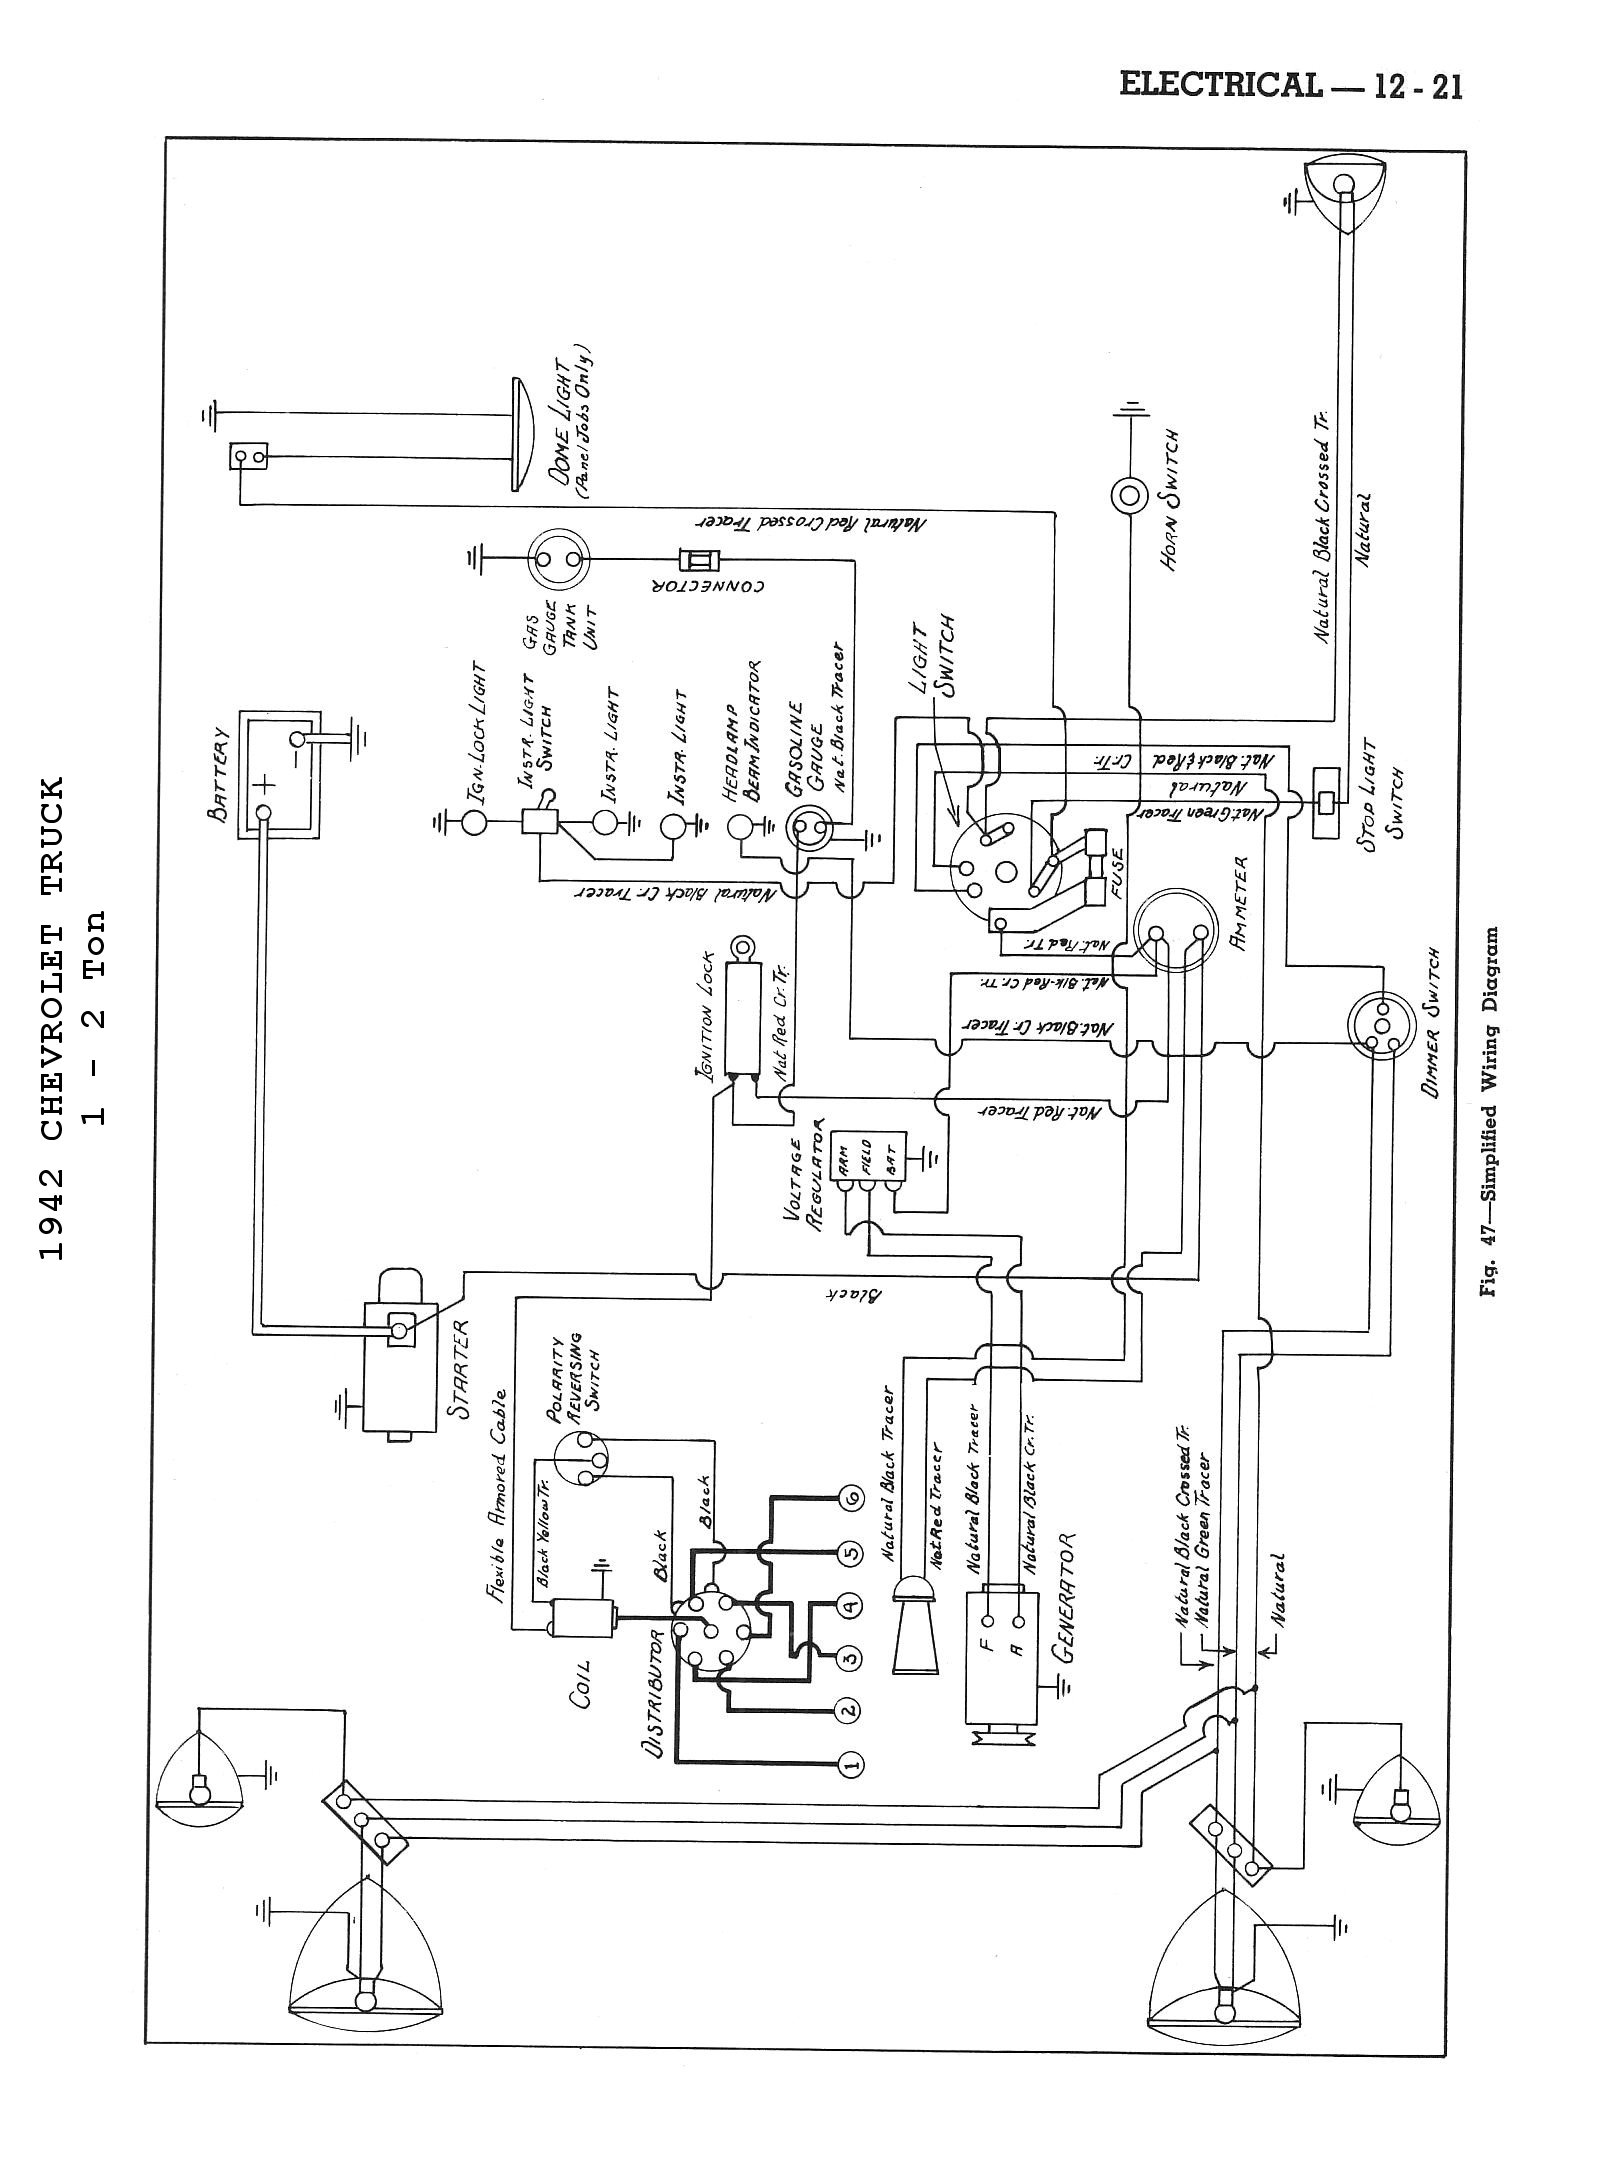 42cm4x2t1221 chevy wiring diagrams  at webbmarketing.co